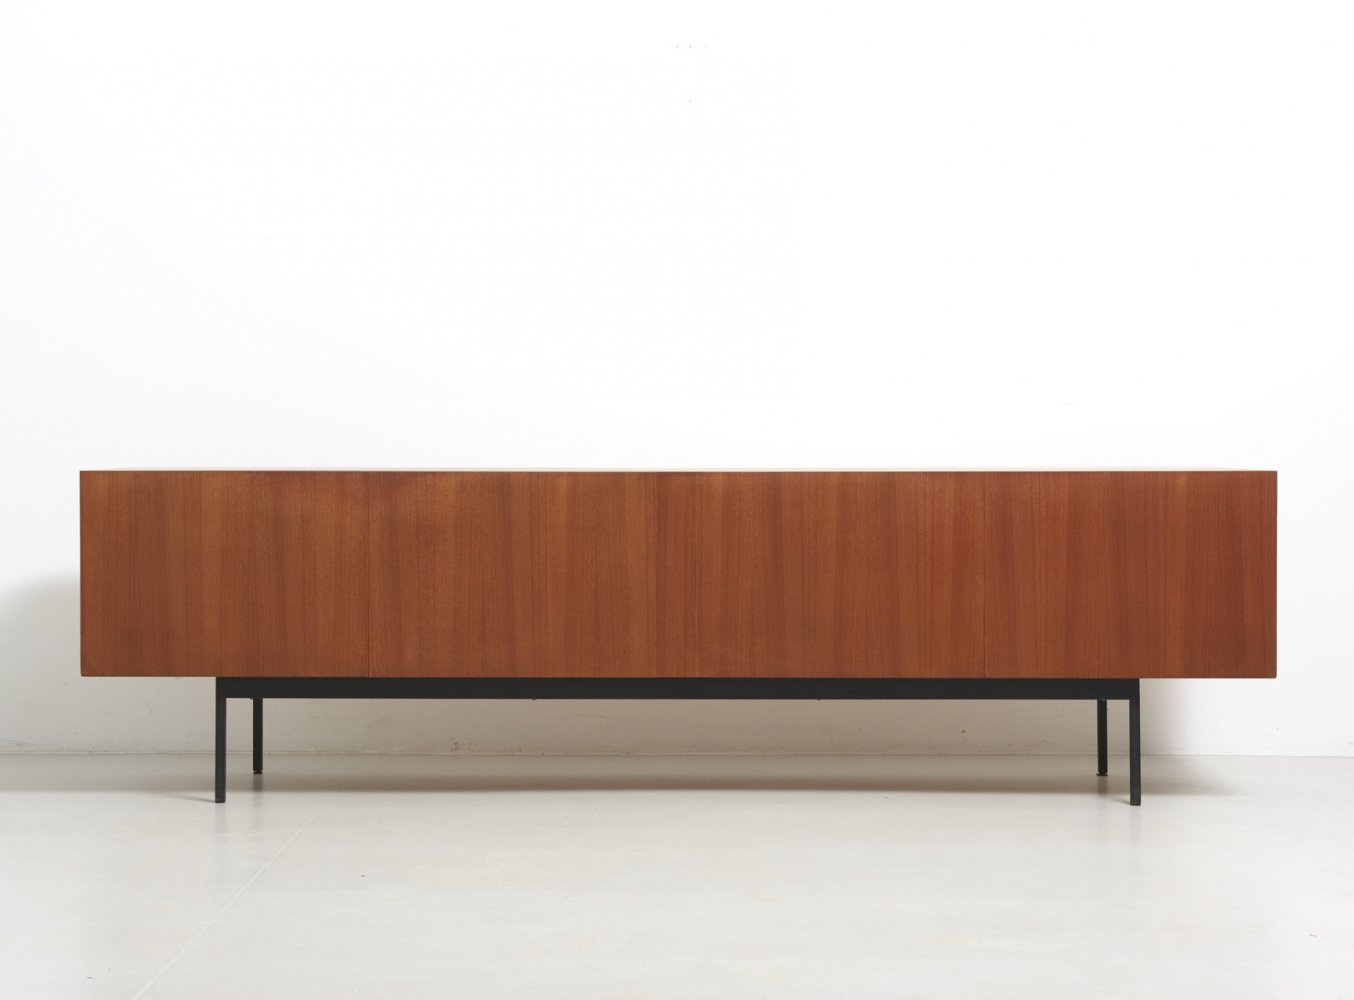 Sideboard Model B40 in Teak by Dieter Waeckerlin for Behr, Germany 1950